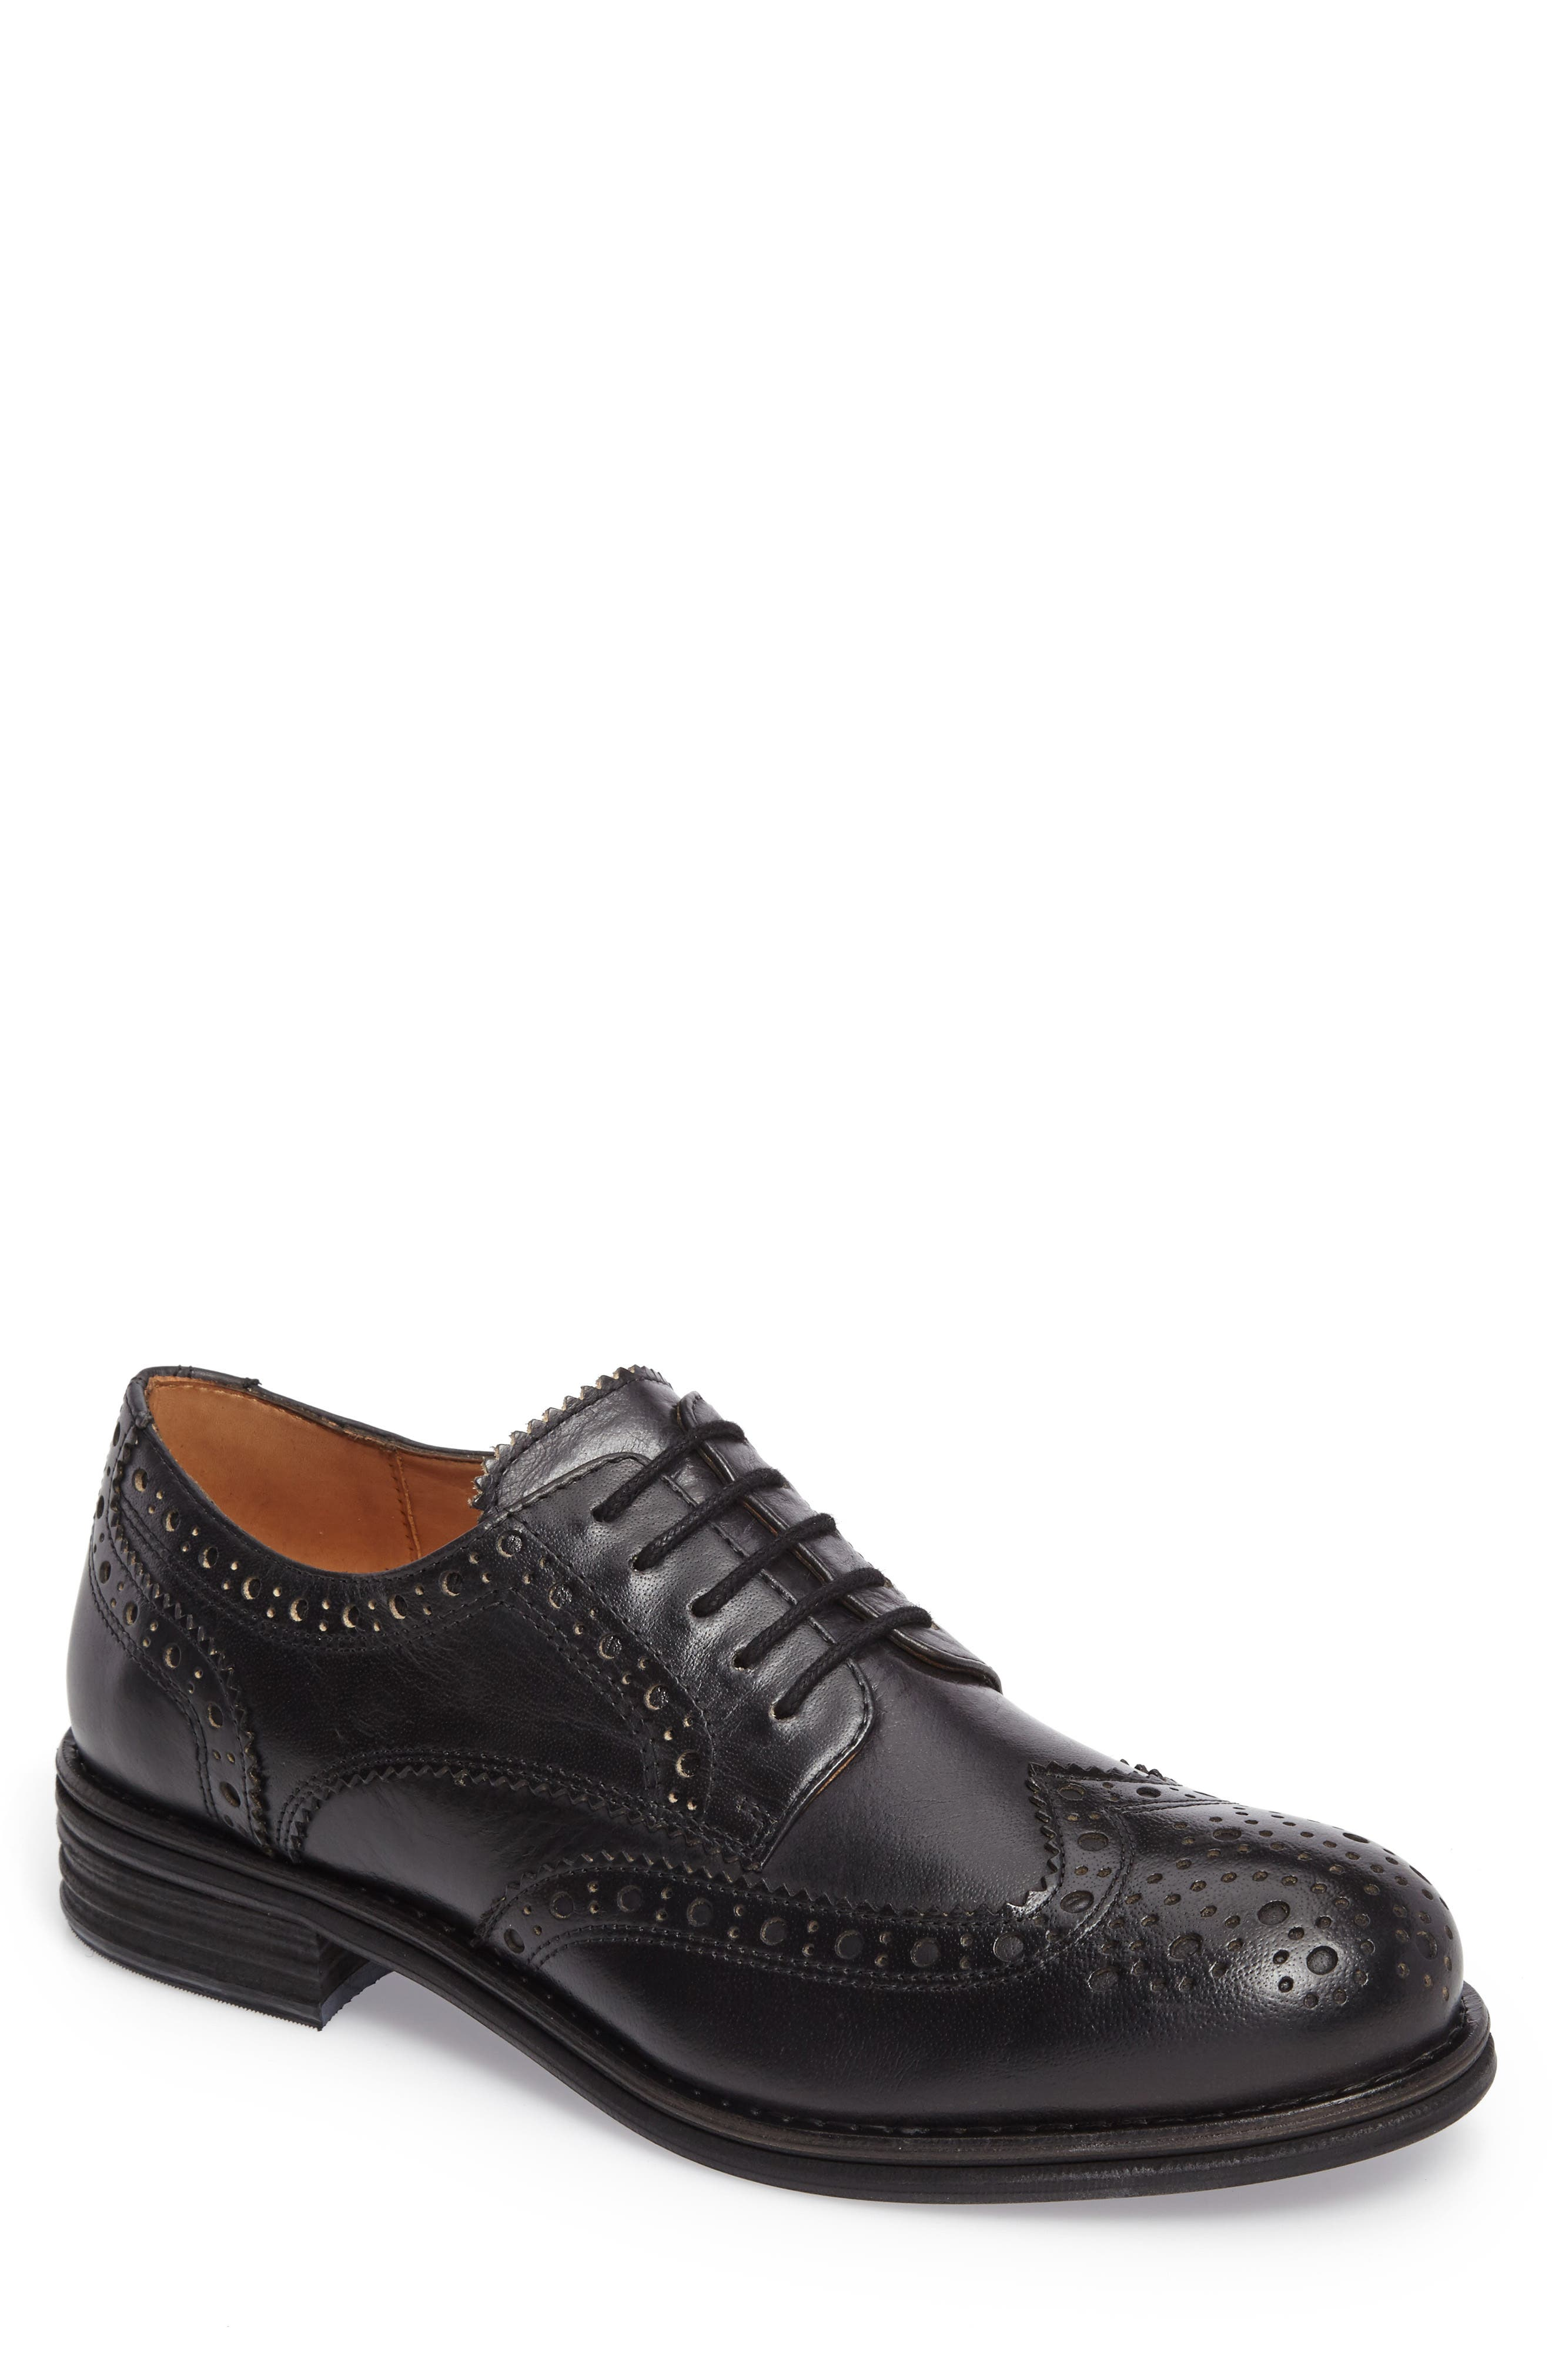 Alternate Image 1 Selected - Vince Camuto Corten Wingtip (Men)